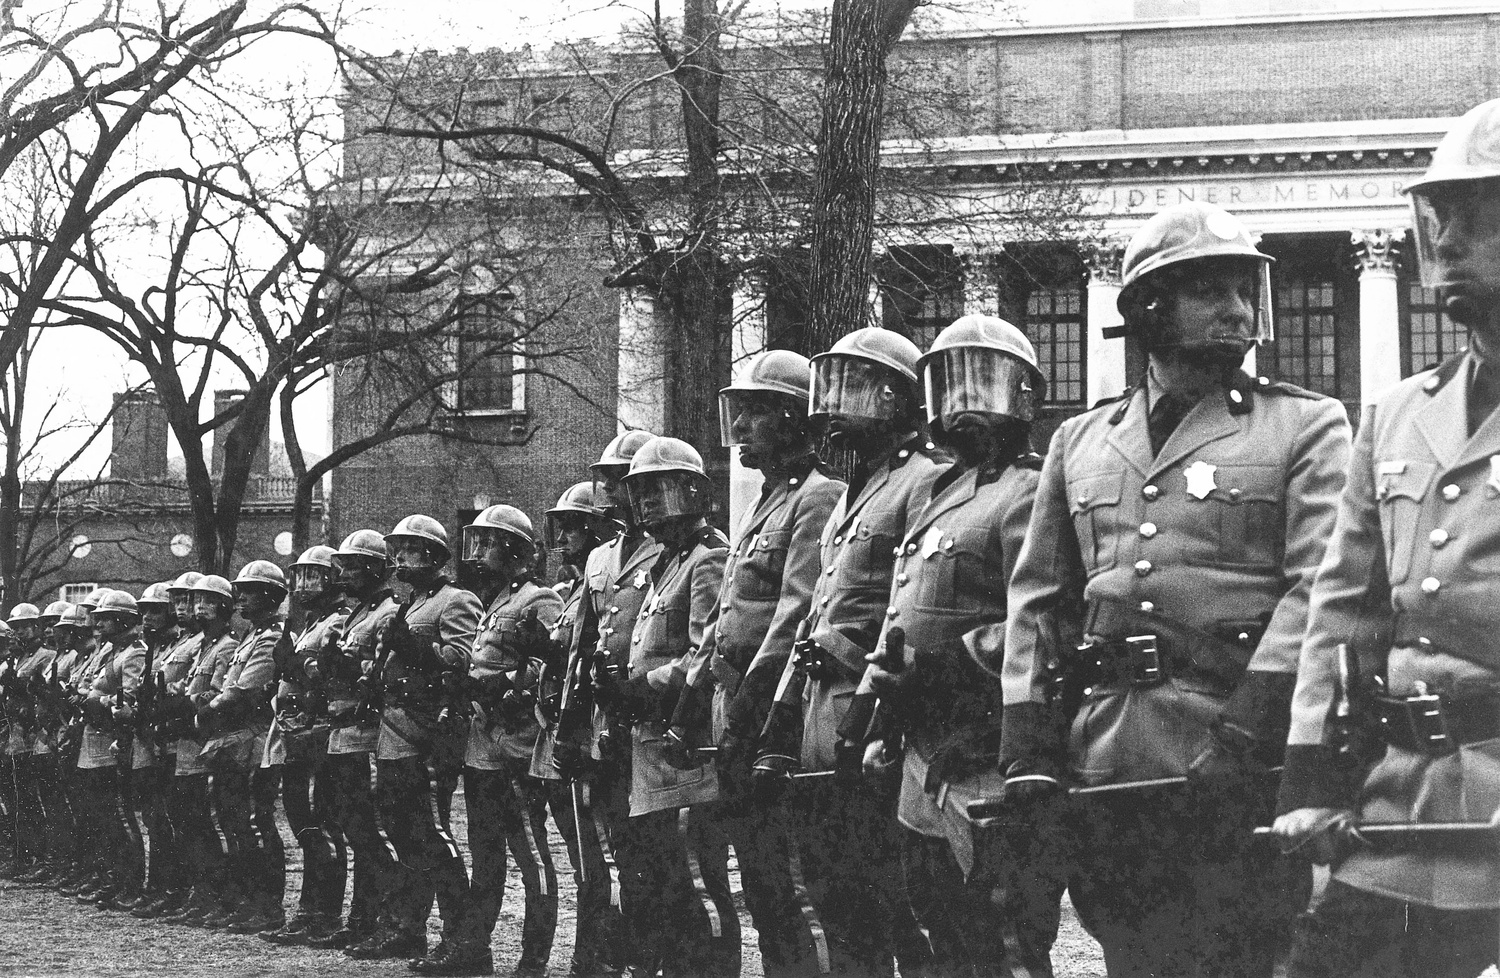 Police officers equipped with riot gear lined Tercentenary Theatre during the University Hall occupation in 1969.